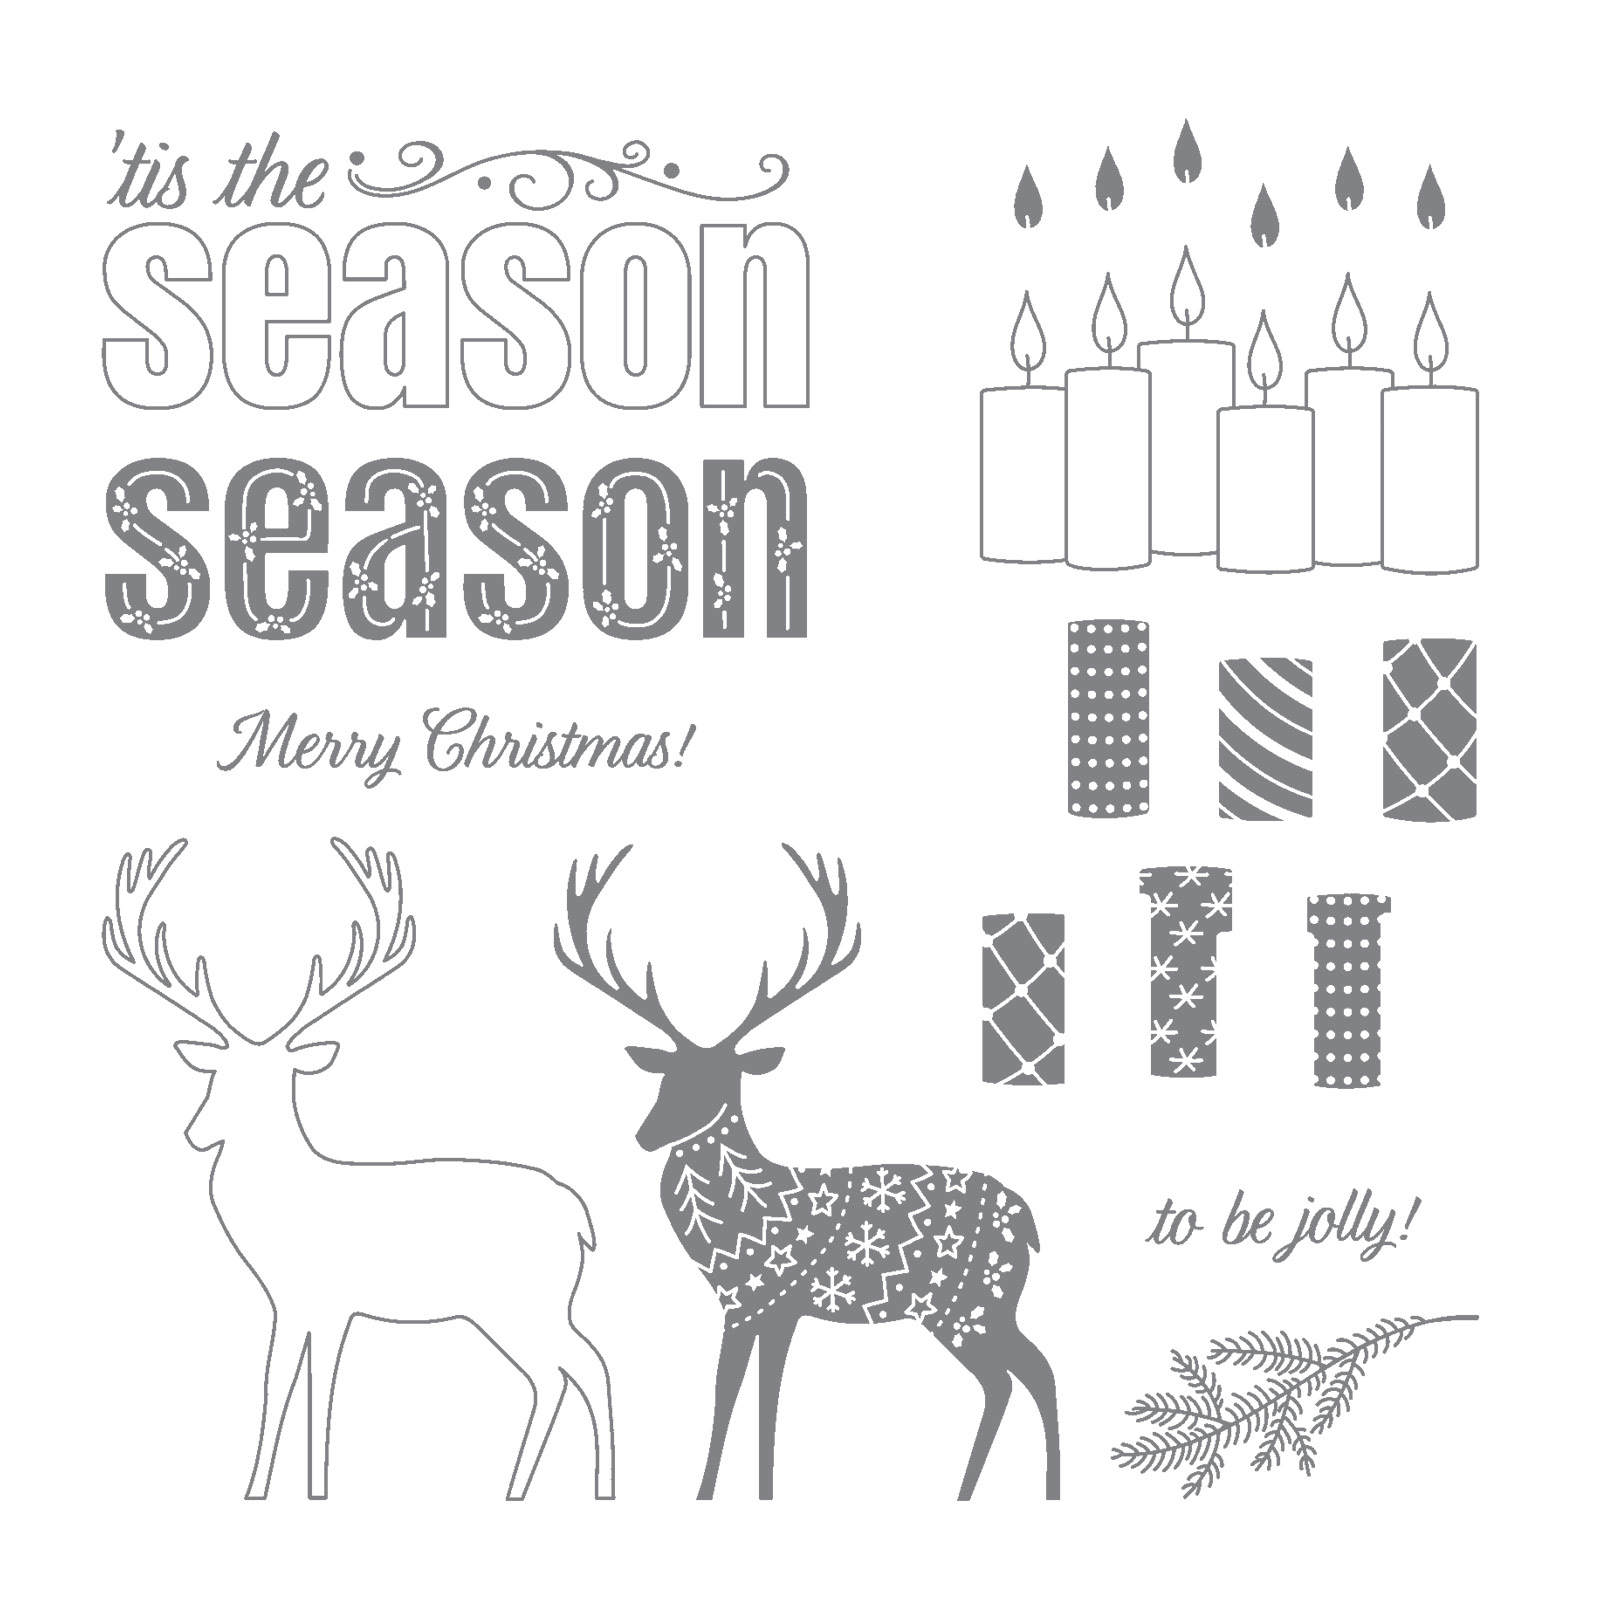 Stampin Up Merry Patterns Christmas card idea - Debra Simonis Stampinup